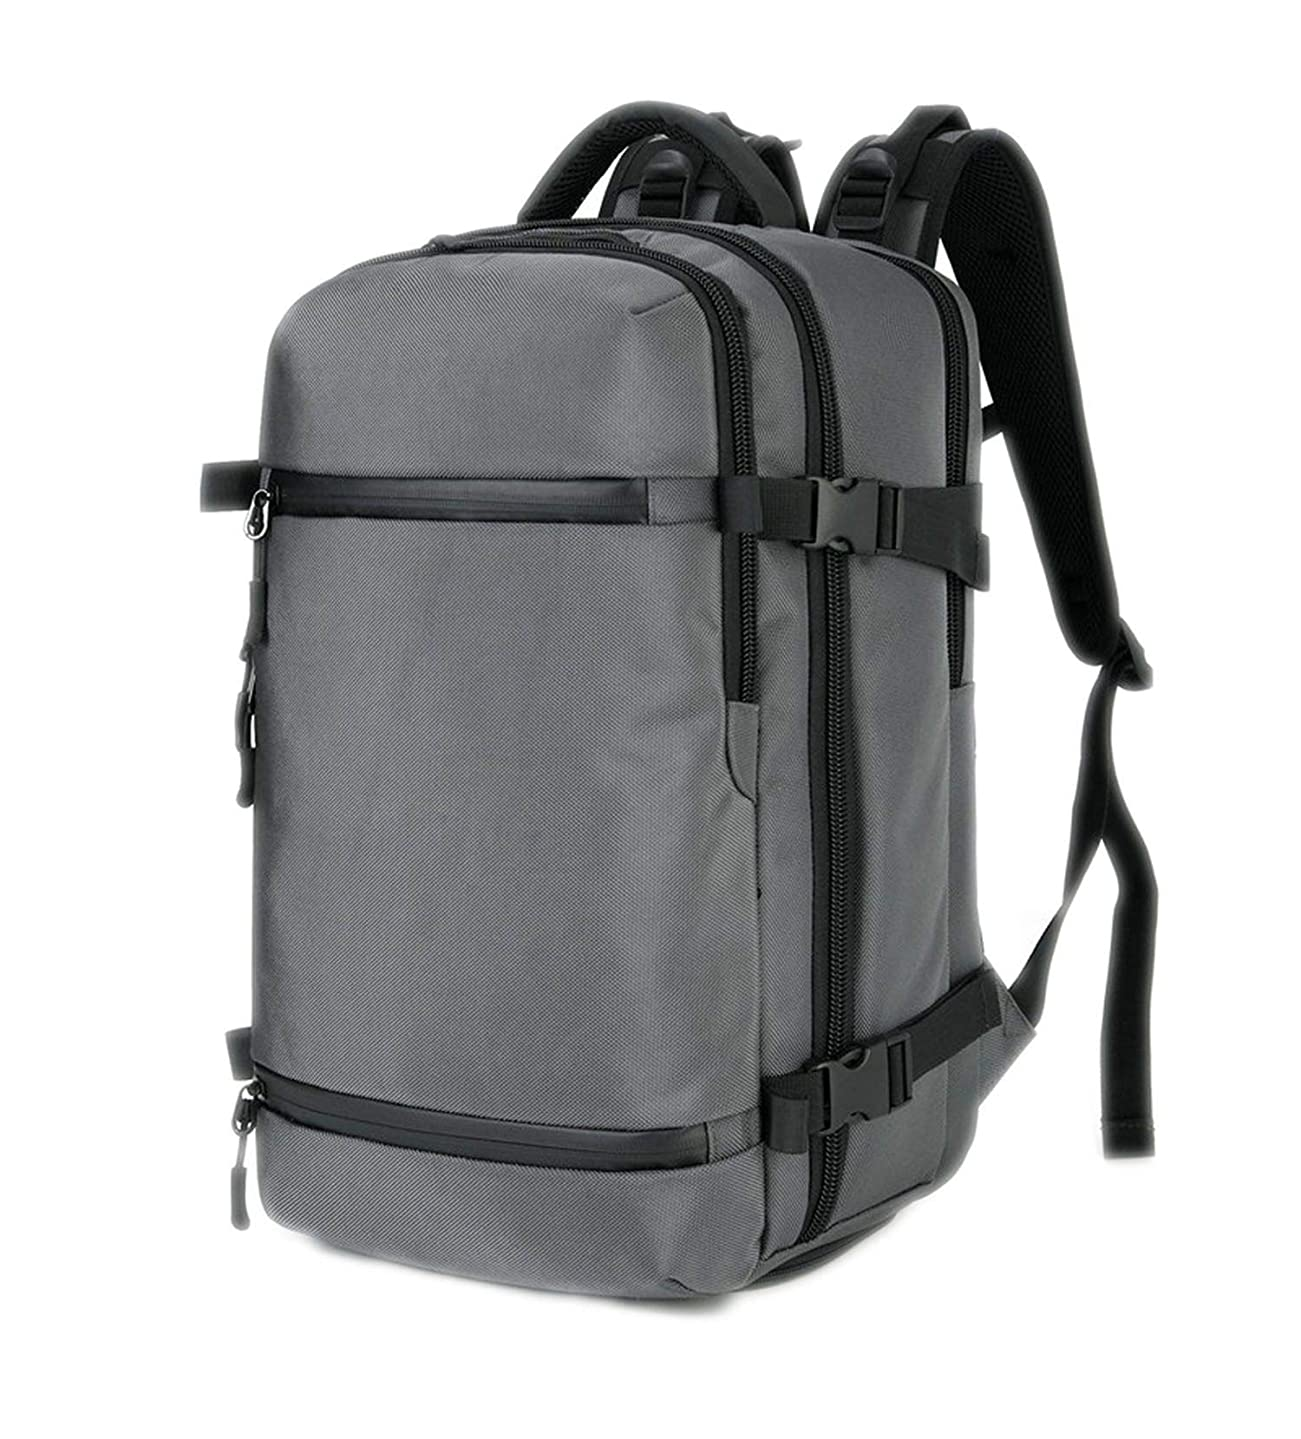 Men Laptop Women Backpack 17.3 Inch Large Capacity Luggage Casual Travel,Grey,20 Inches